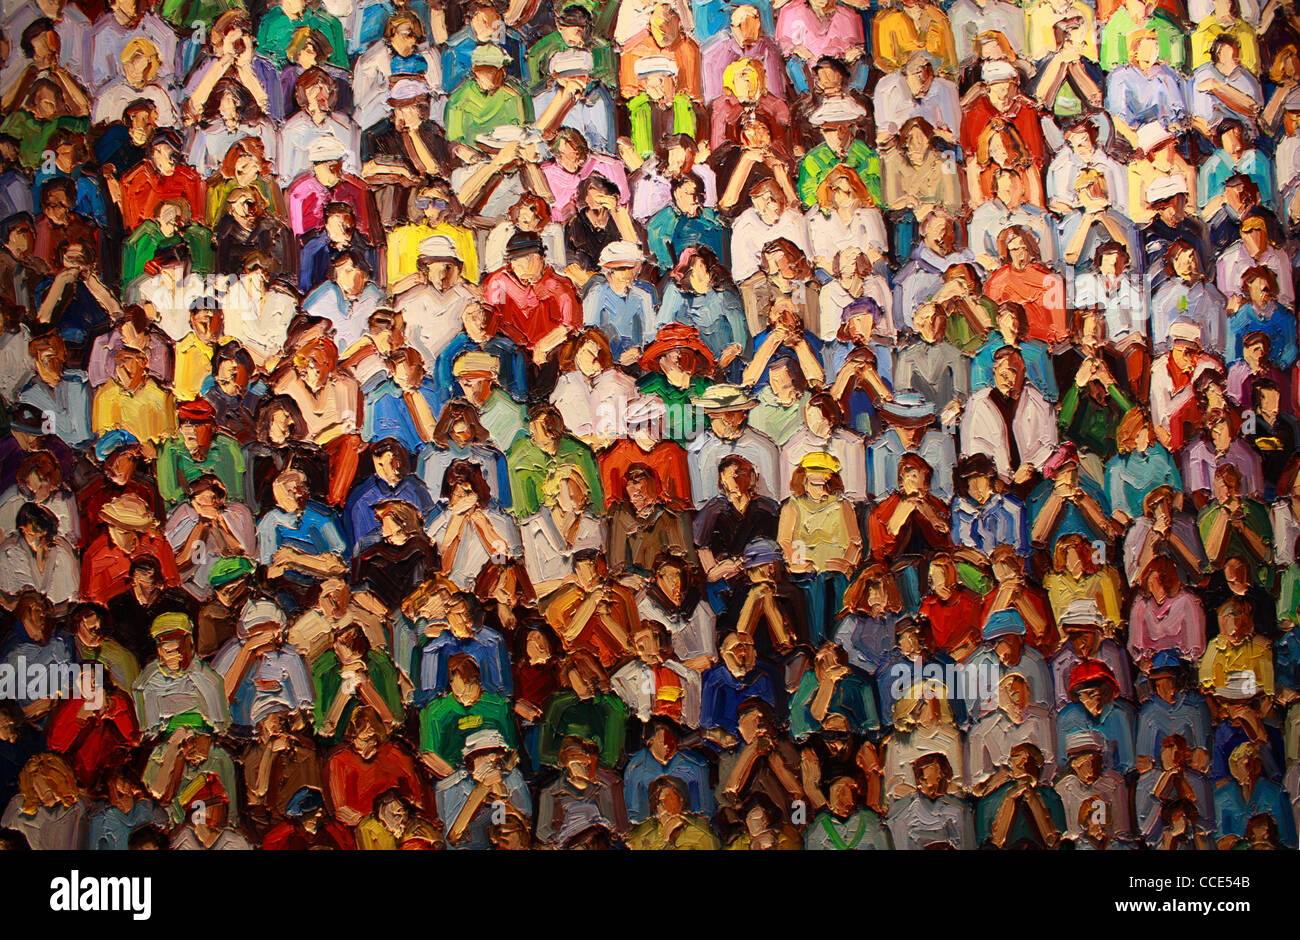 colourful painting of a crowd or audience, detail of Stadion by Ralph Fleck, 2011 - Stock Image